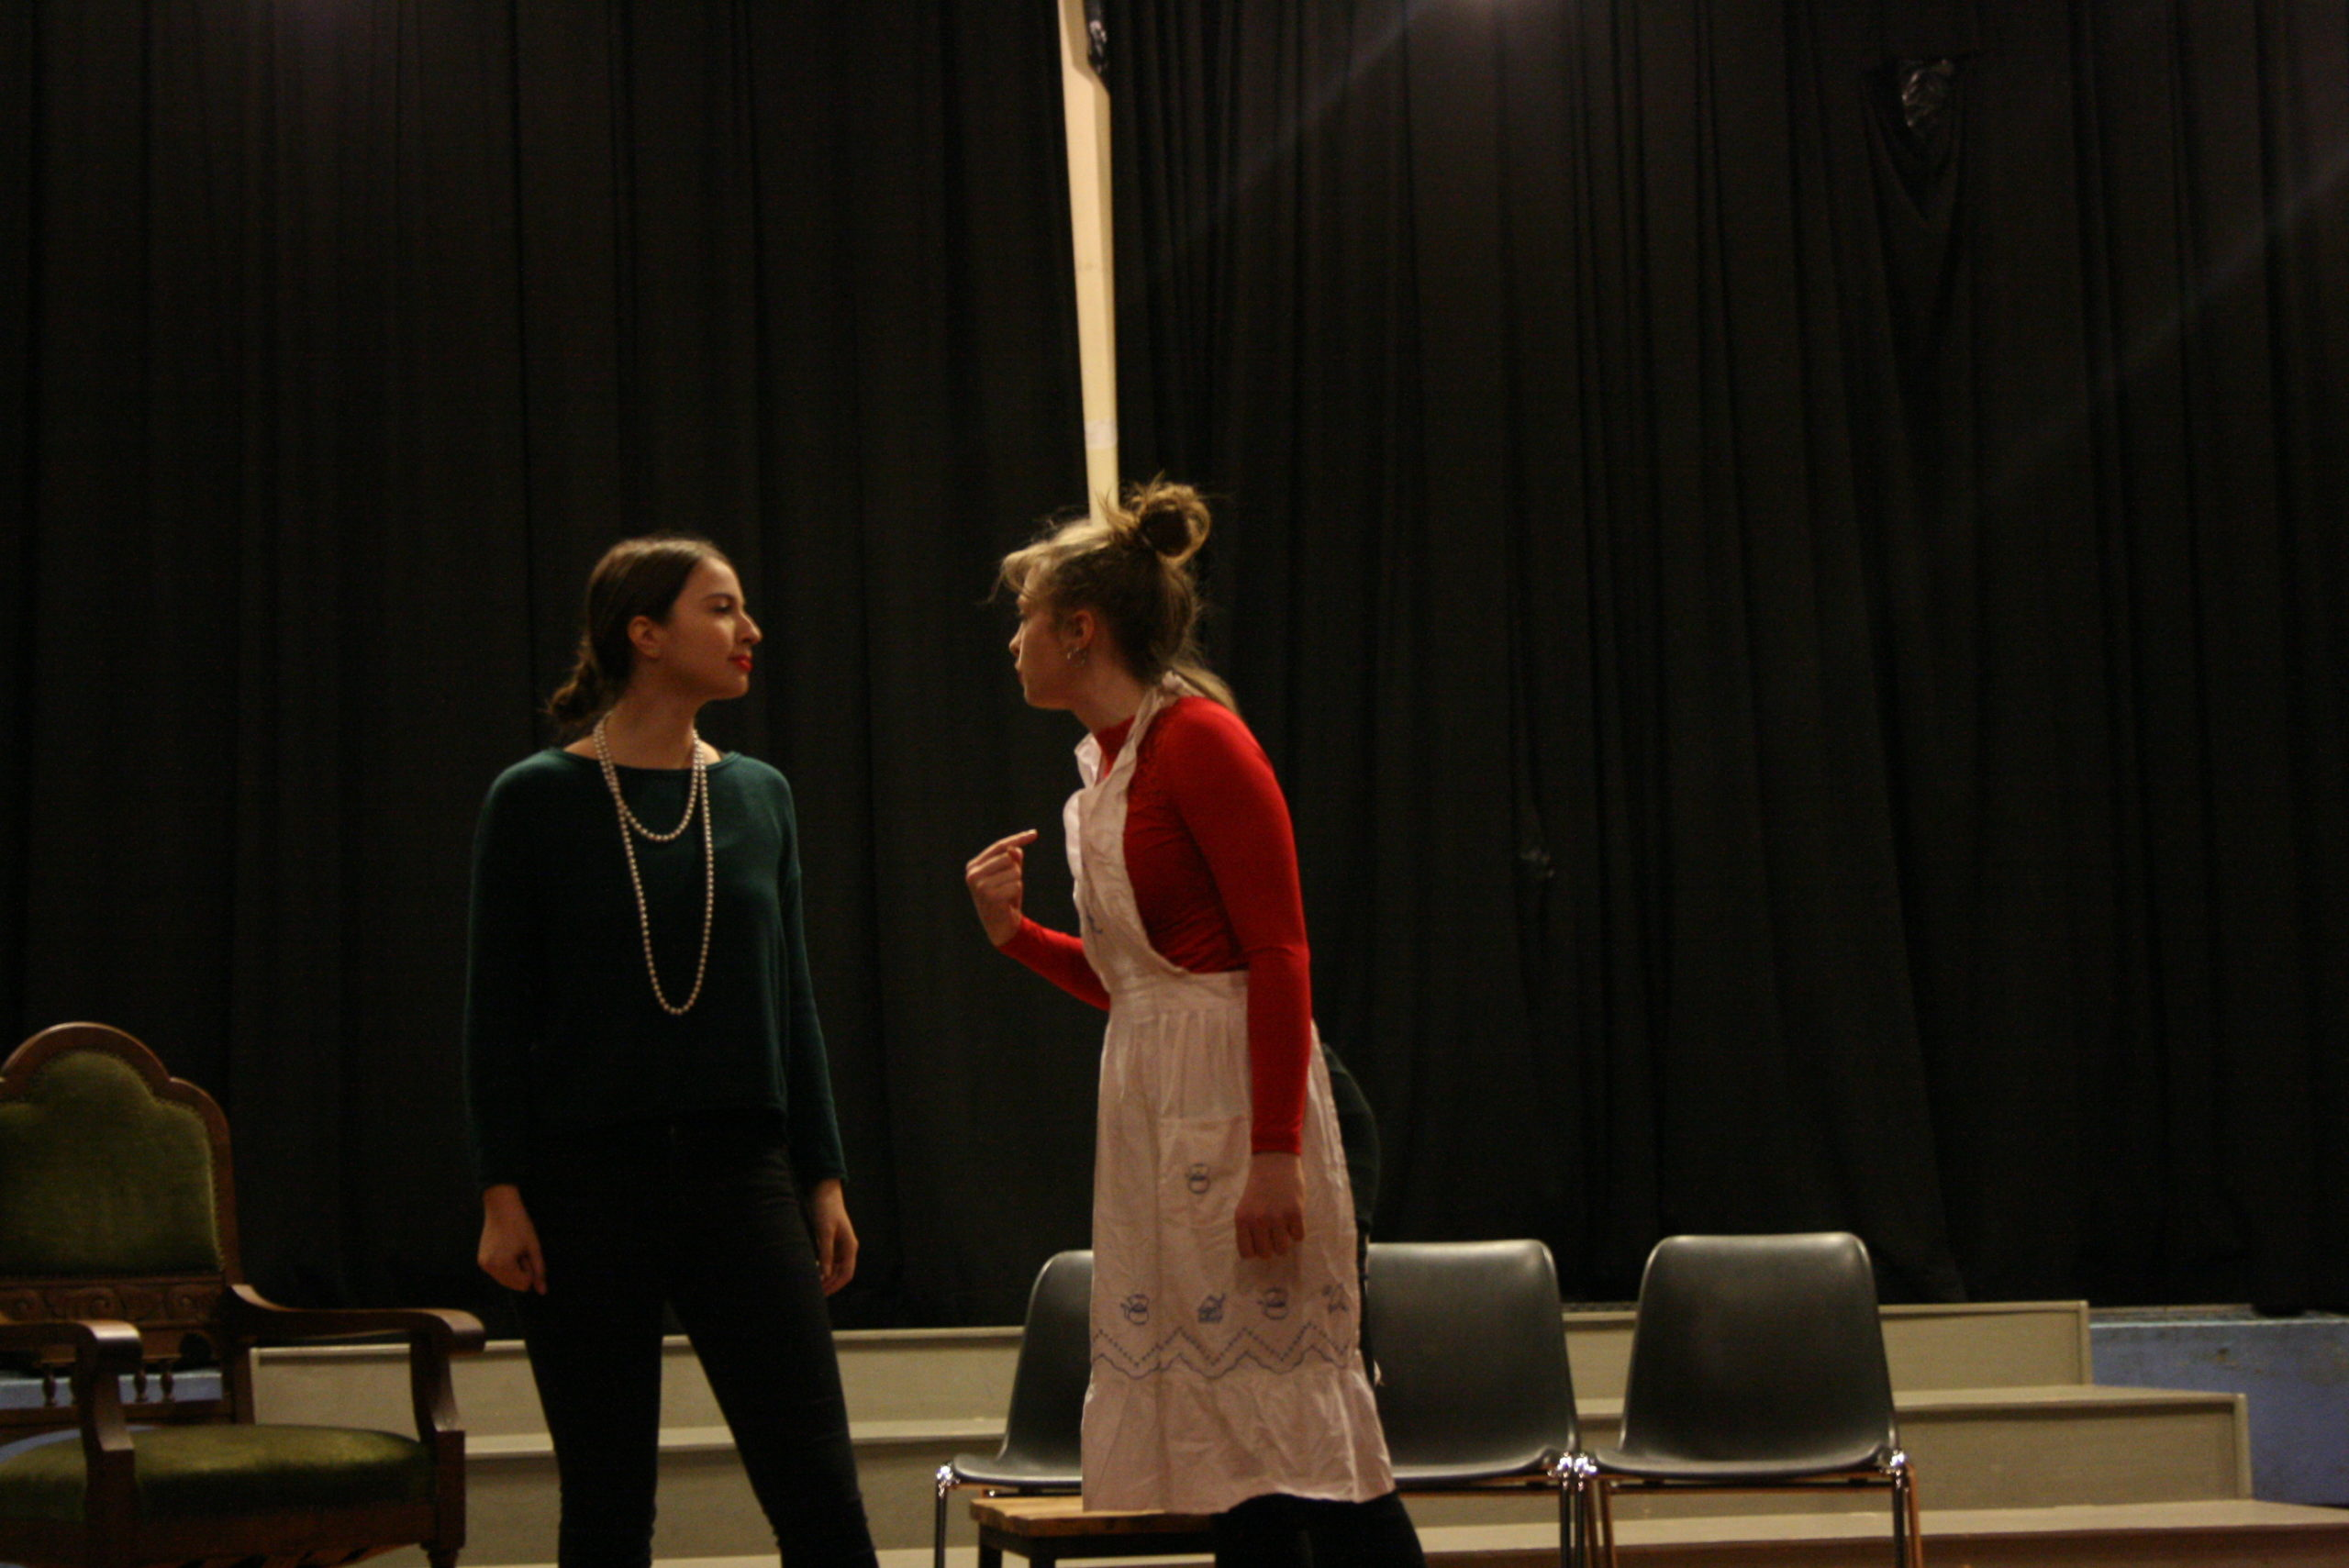 """Photo from the show """"Skin of our Teeth"""". Two female actors are on stage, one dressed like a 1920s madame, the other one like a maid. The maid points her index finger at herself, looking angrily at the madame."""